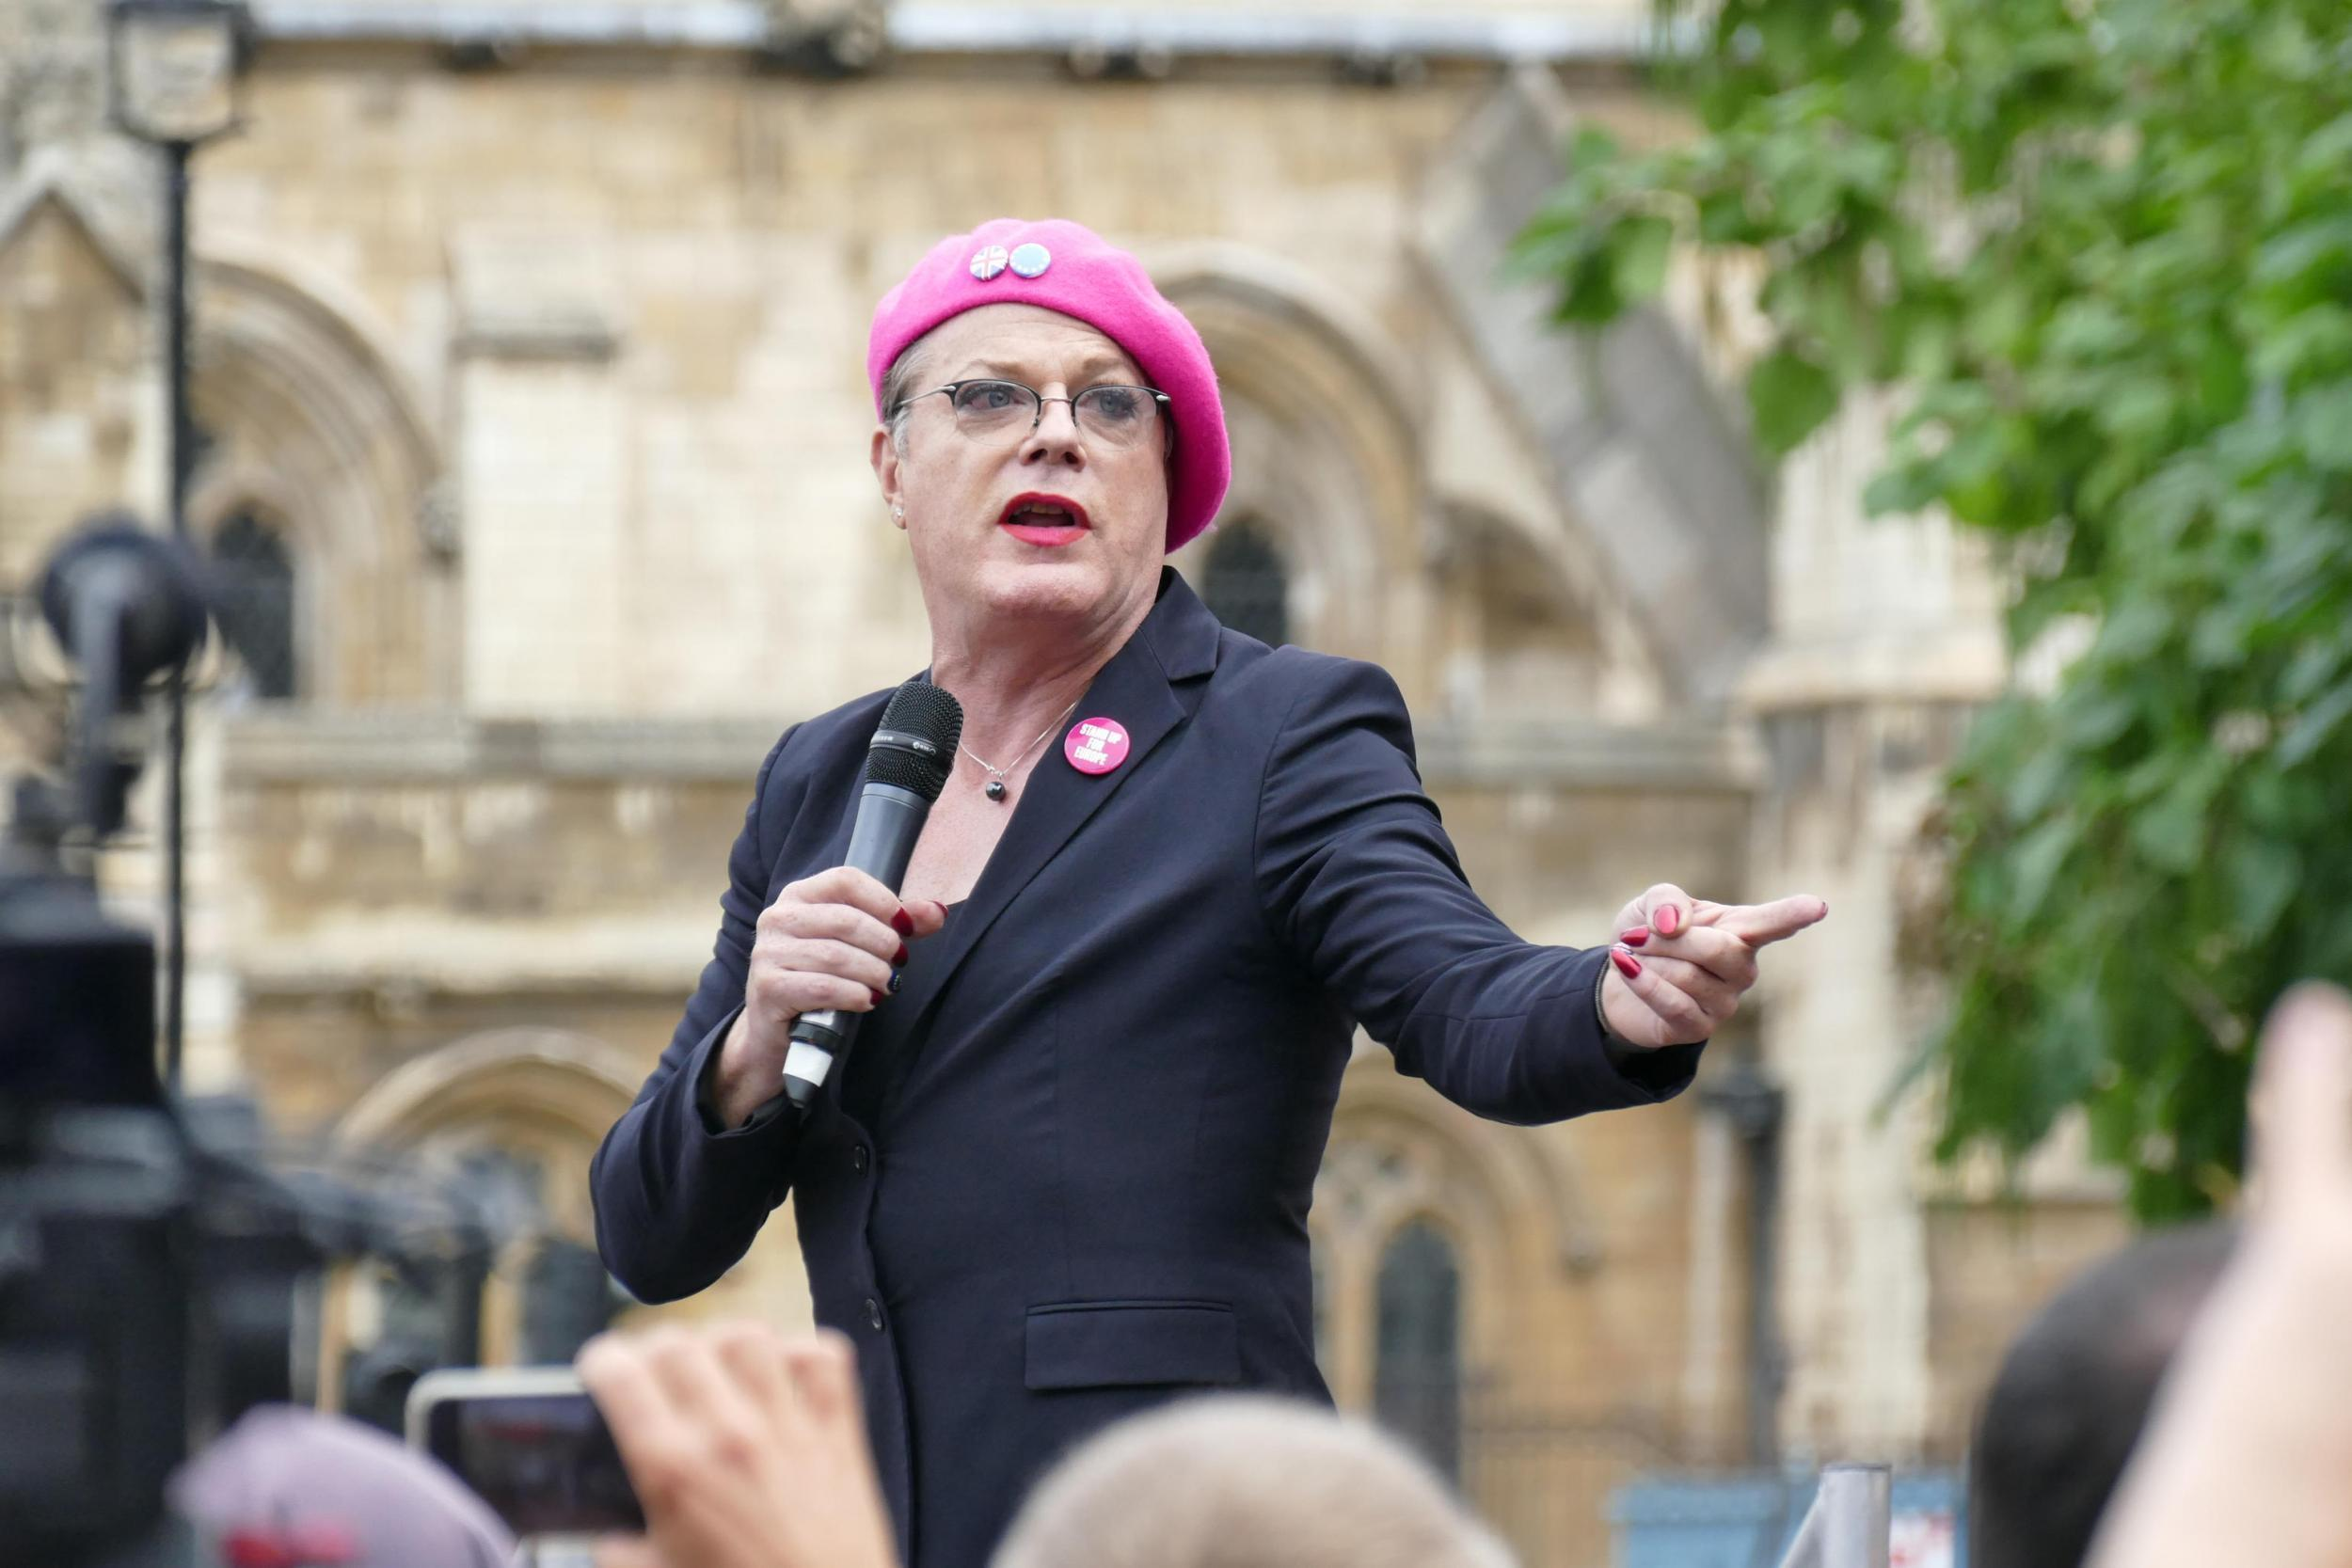 Eddie Izzard's open approach to cross-dressing and transvestism has put the practice into the public eye.